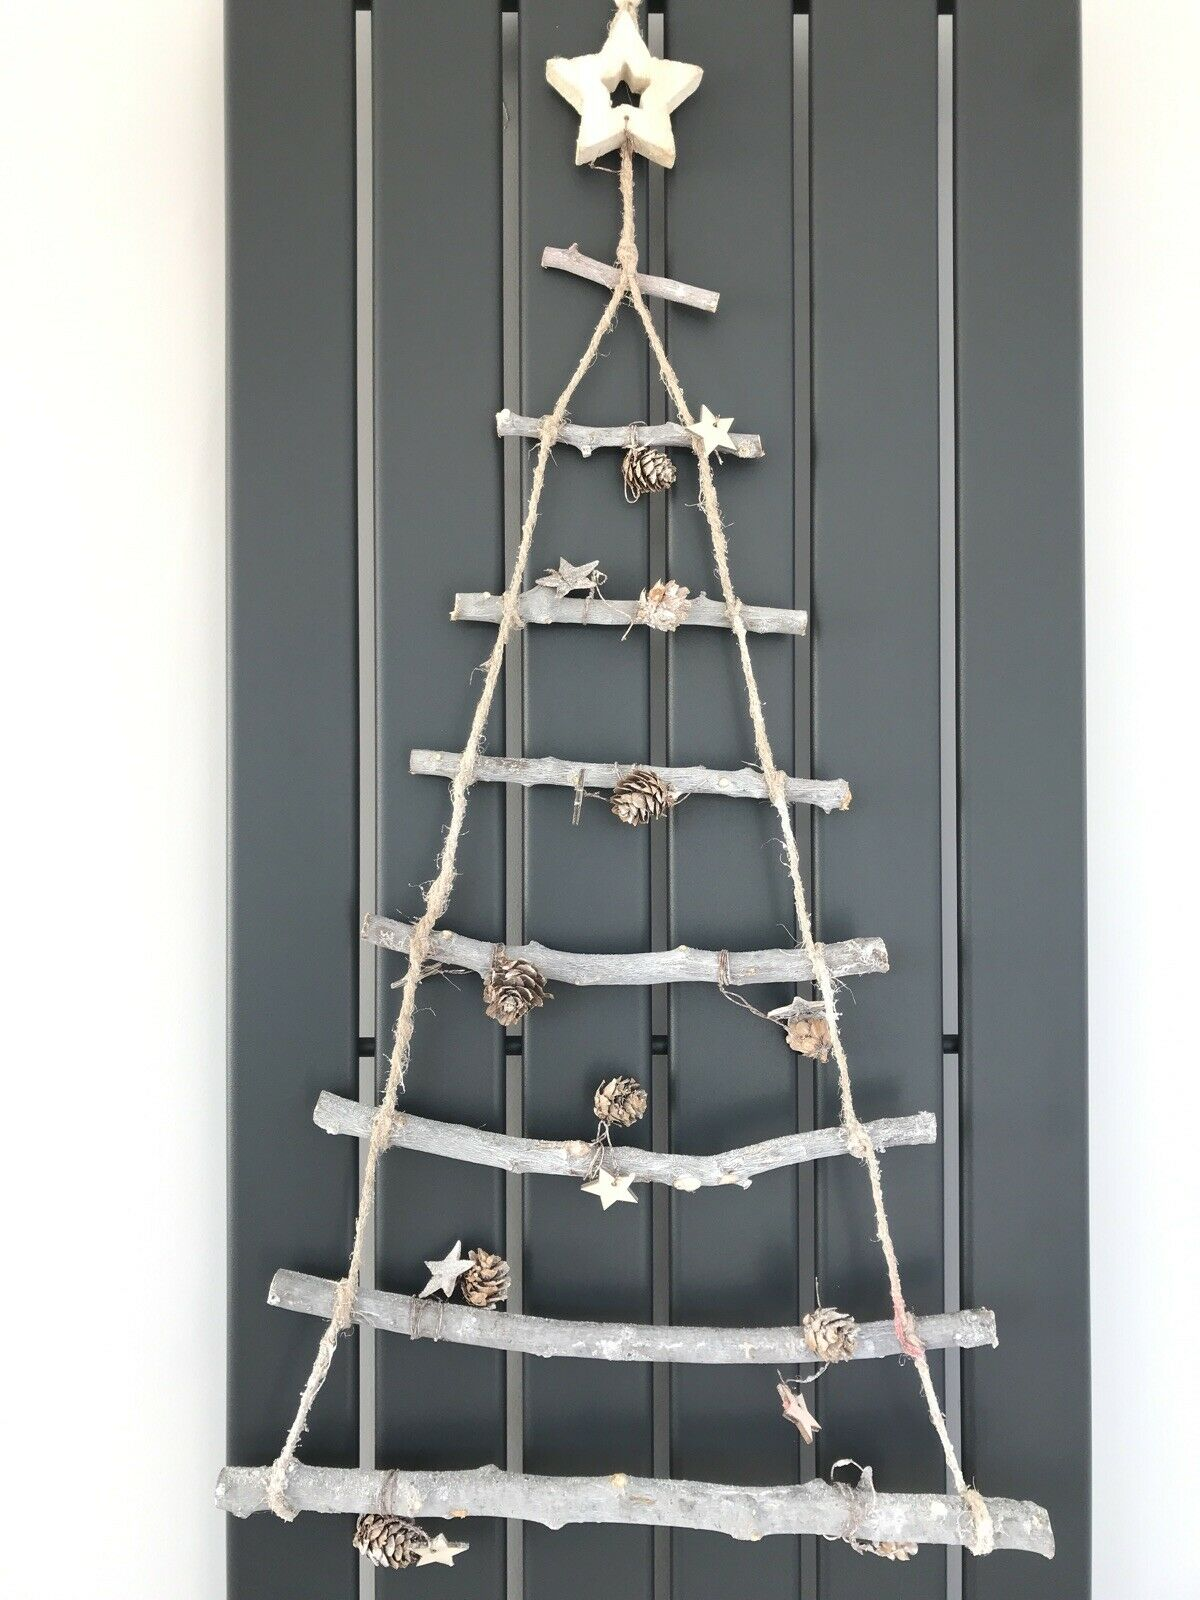 Wall Hanging Christmas Twig Tree Decoration Festive Rustic Wooden Ladder 80cm For Sale